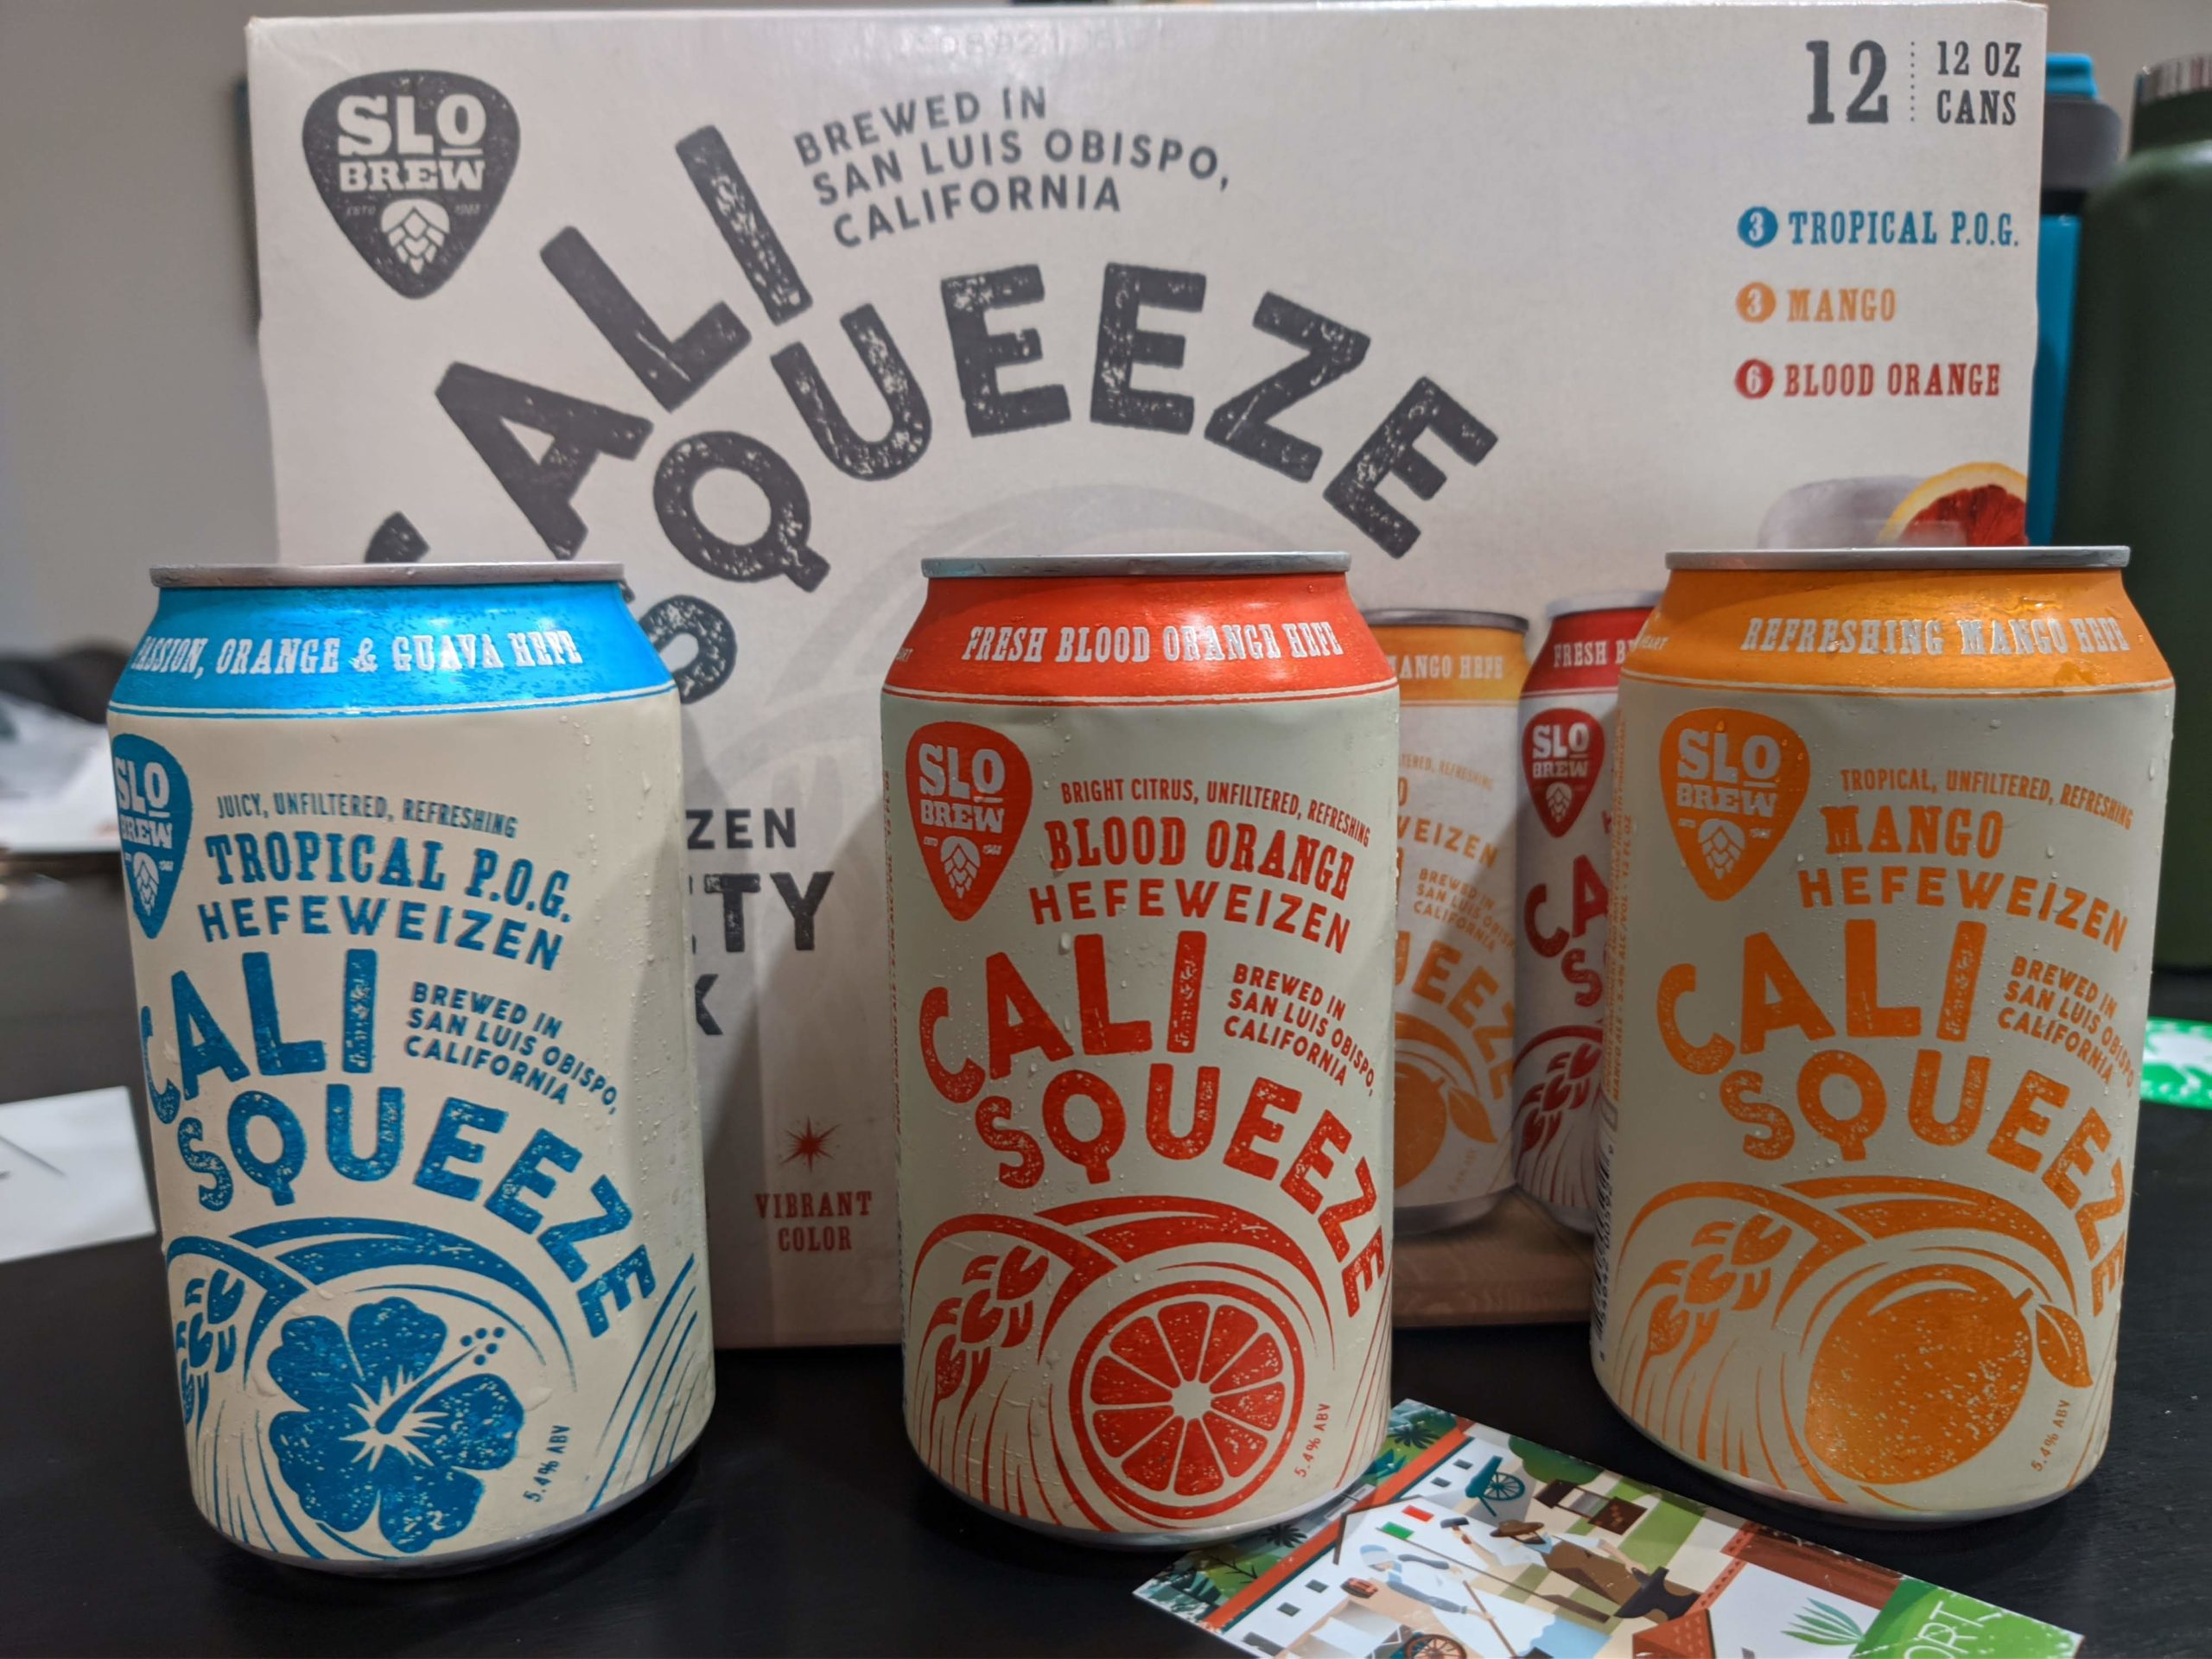 Cali Squeeze: Tropical POG and Mango review